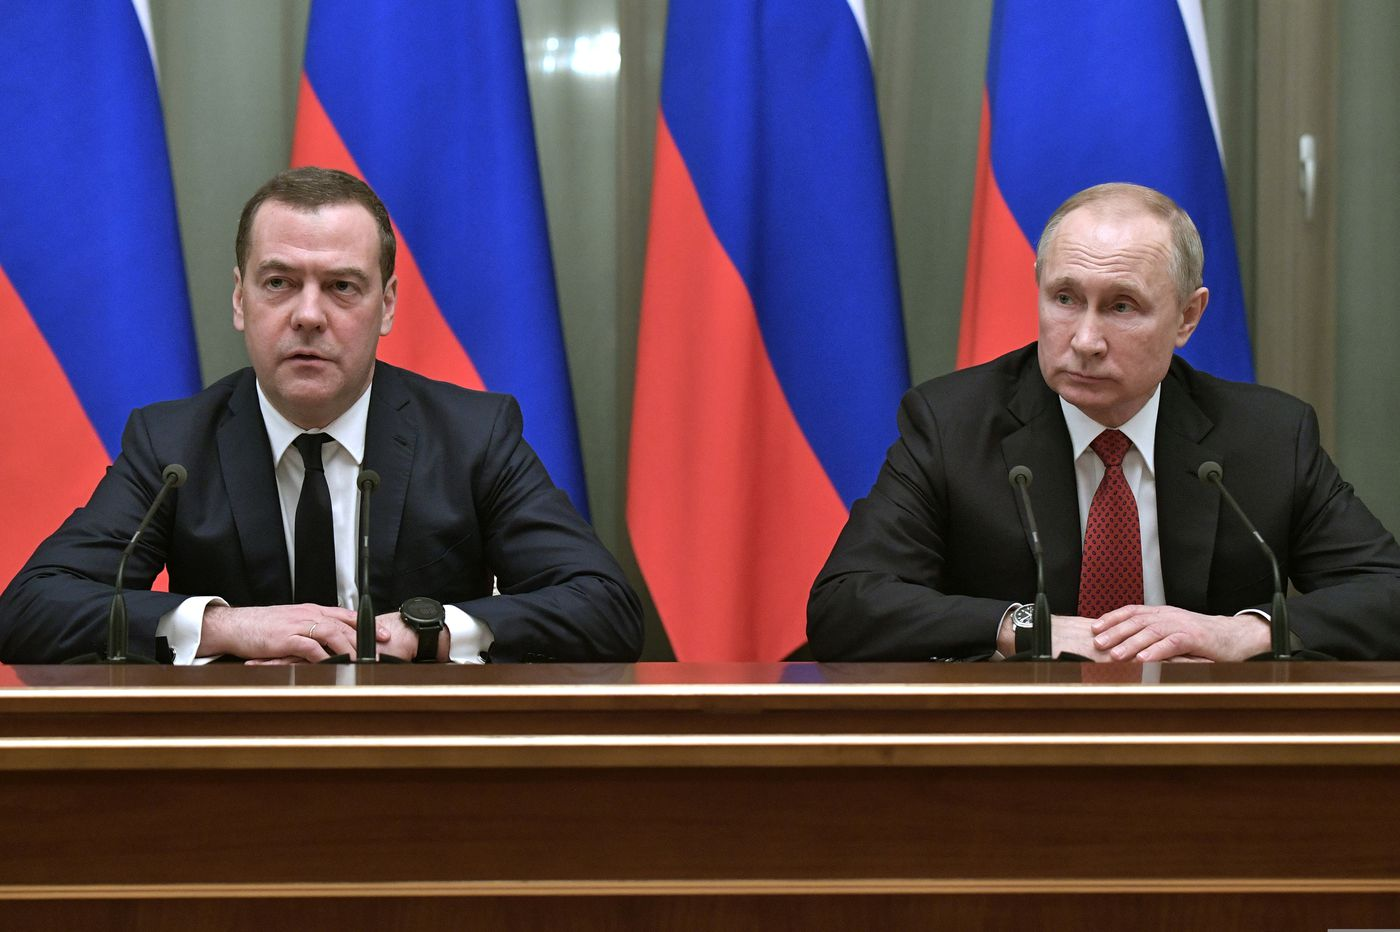 Russian prime minister resigns amid government shake-up under Putin's direction